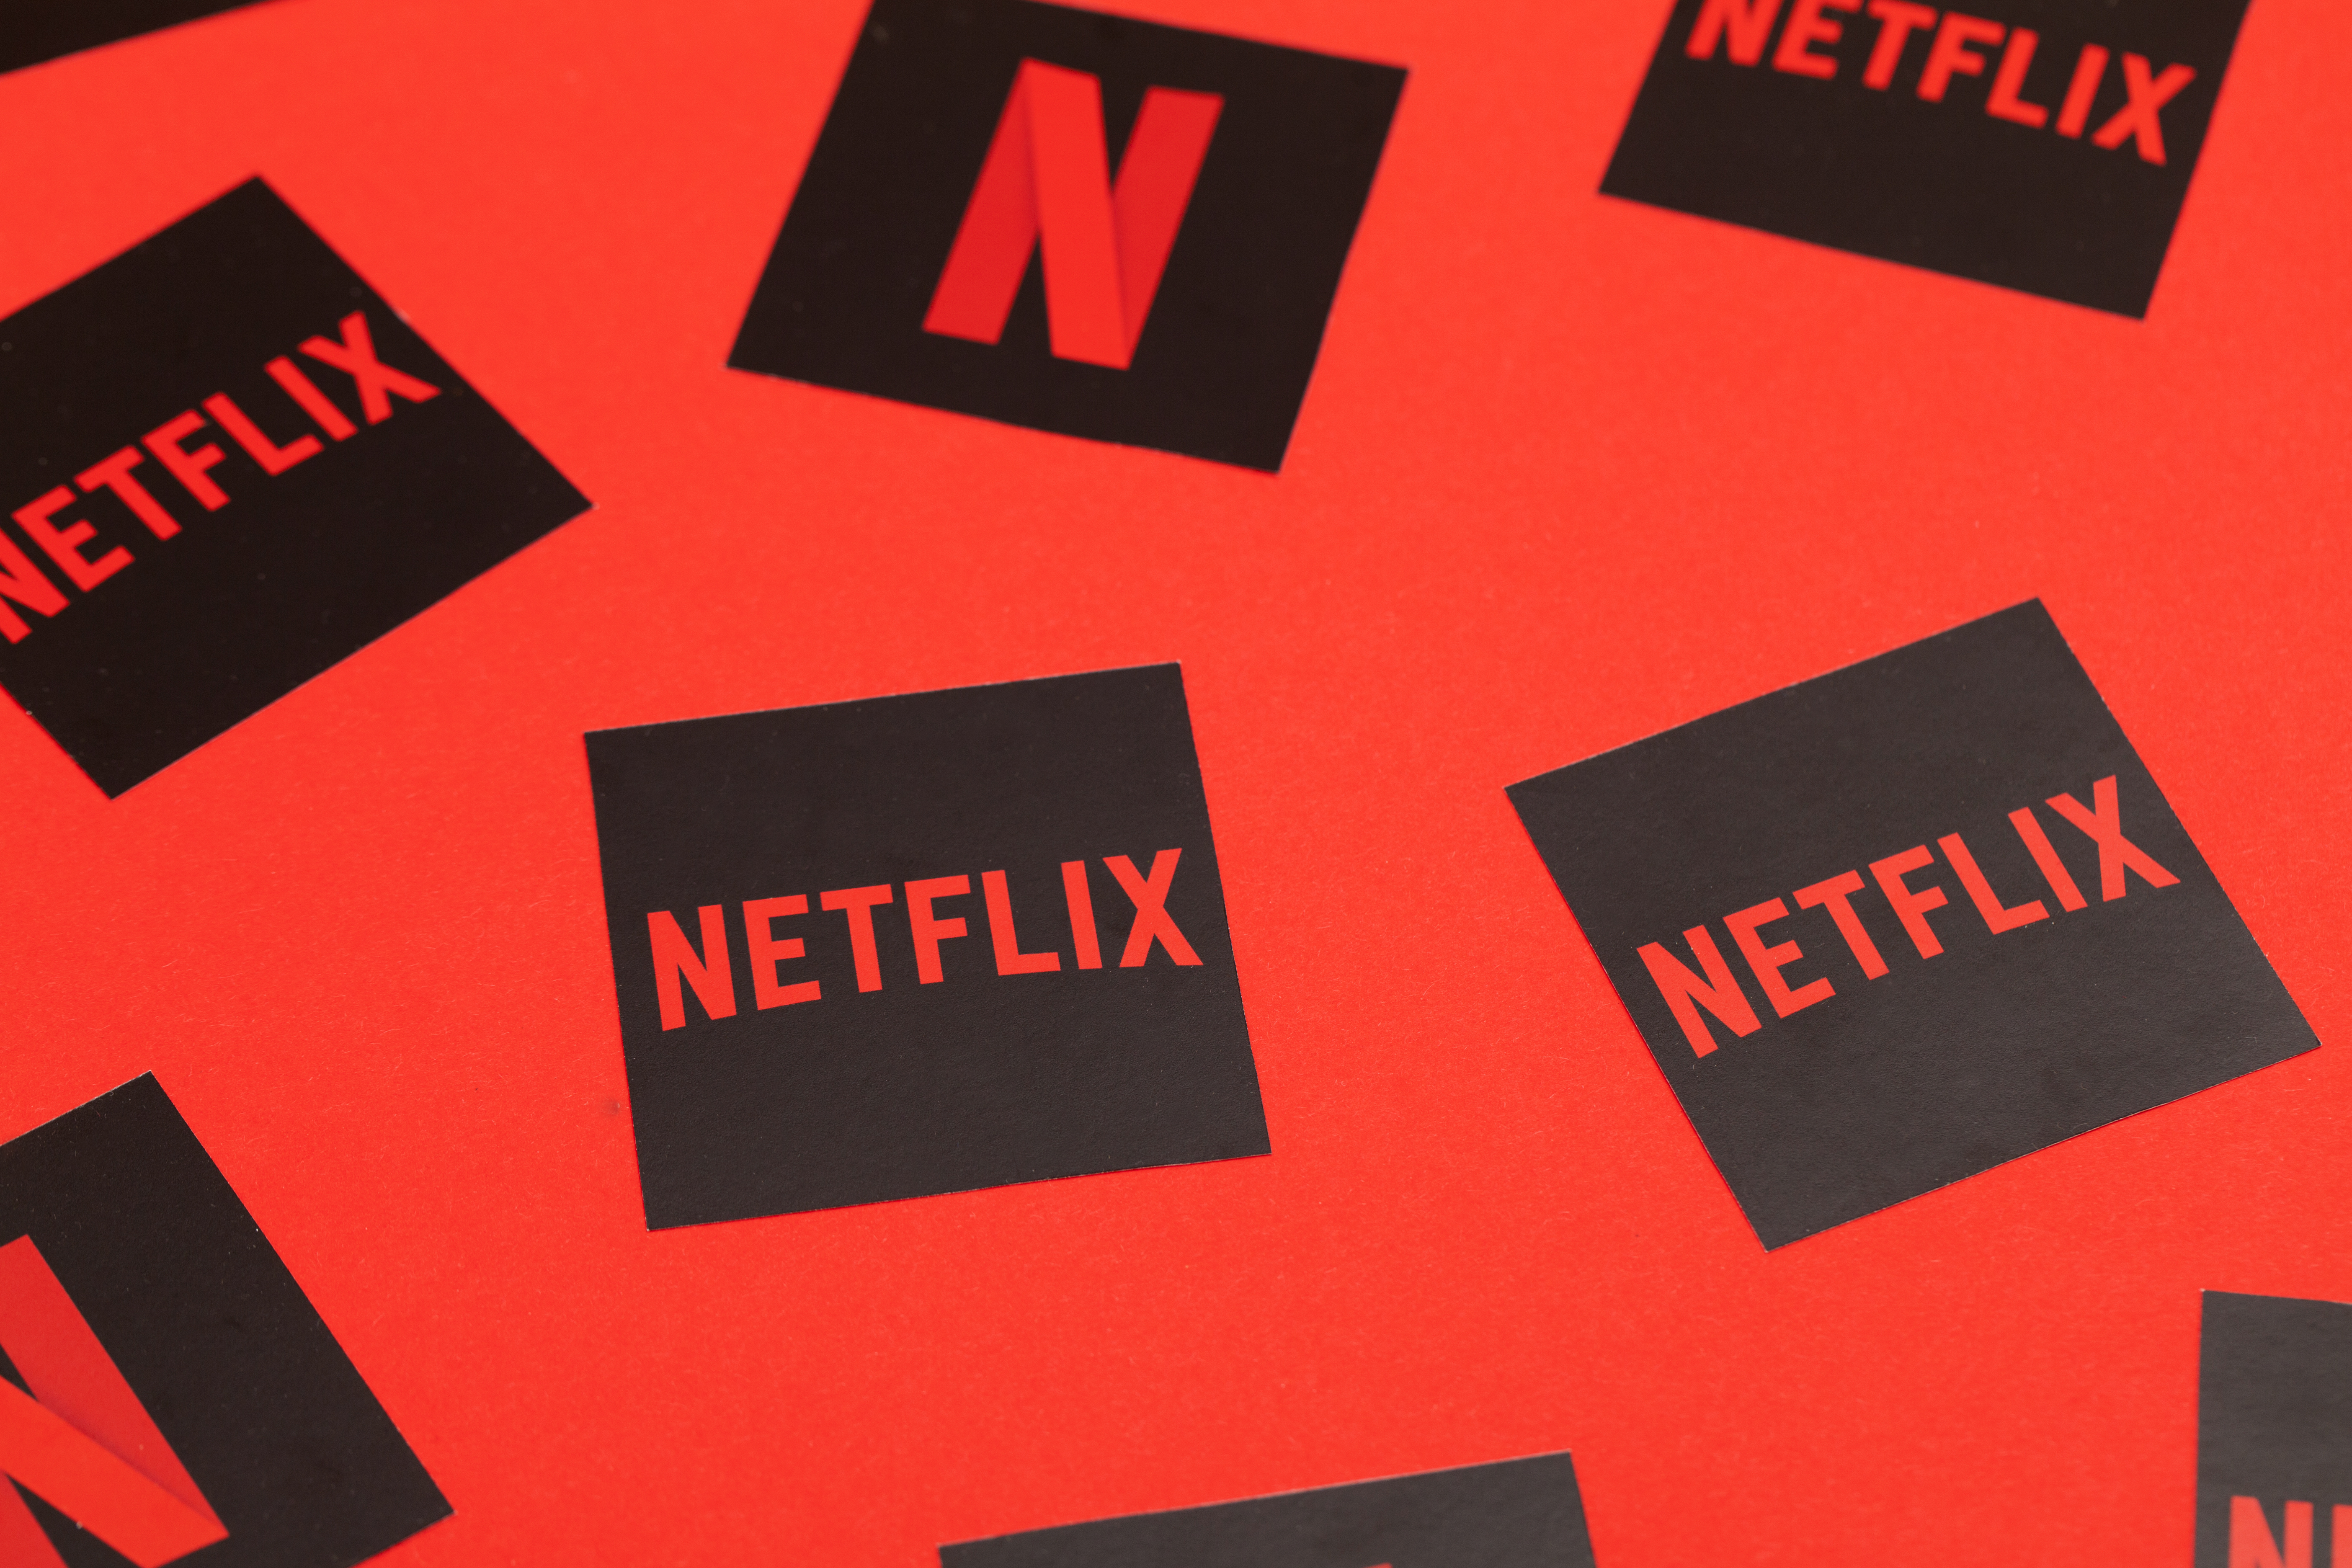 It's time to say so long to summer, and also everything leaving Netflix in September